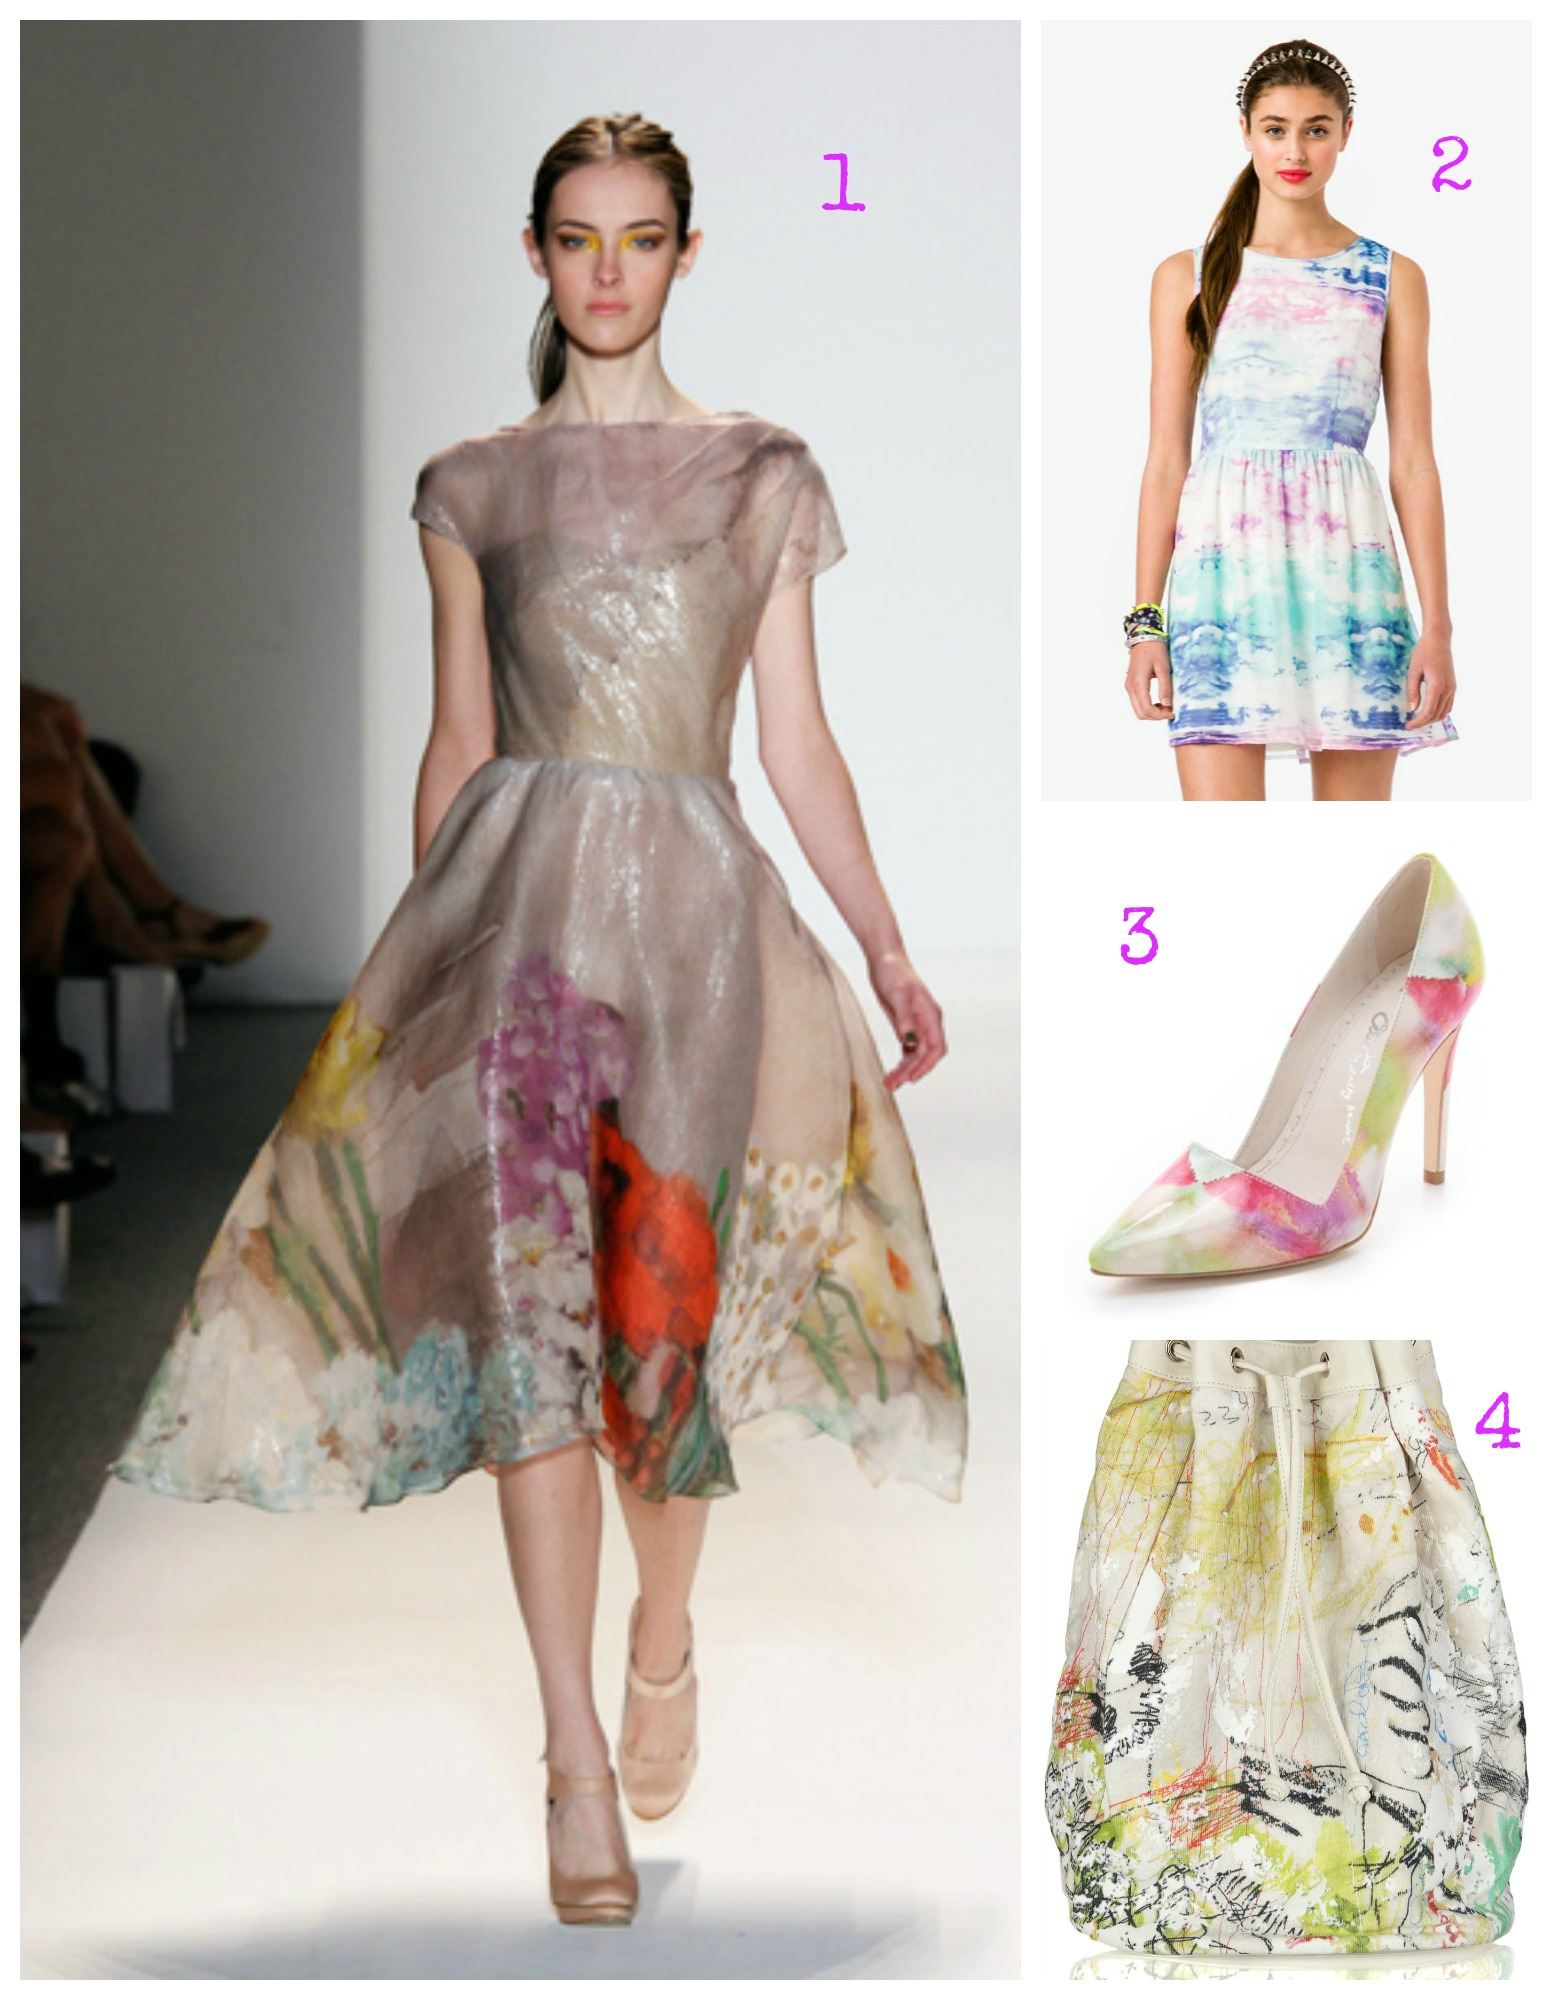 Lela Rose Floral Print Silk Organza Dress, Forever 21 Water Color Sky Fit & Flare Dress, Alice + Olivia Dina Watercolor Pumps, Alexander Wang Walker Printed Canvas Backpack